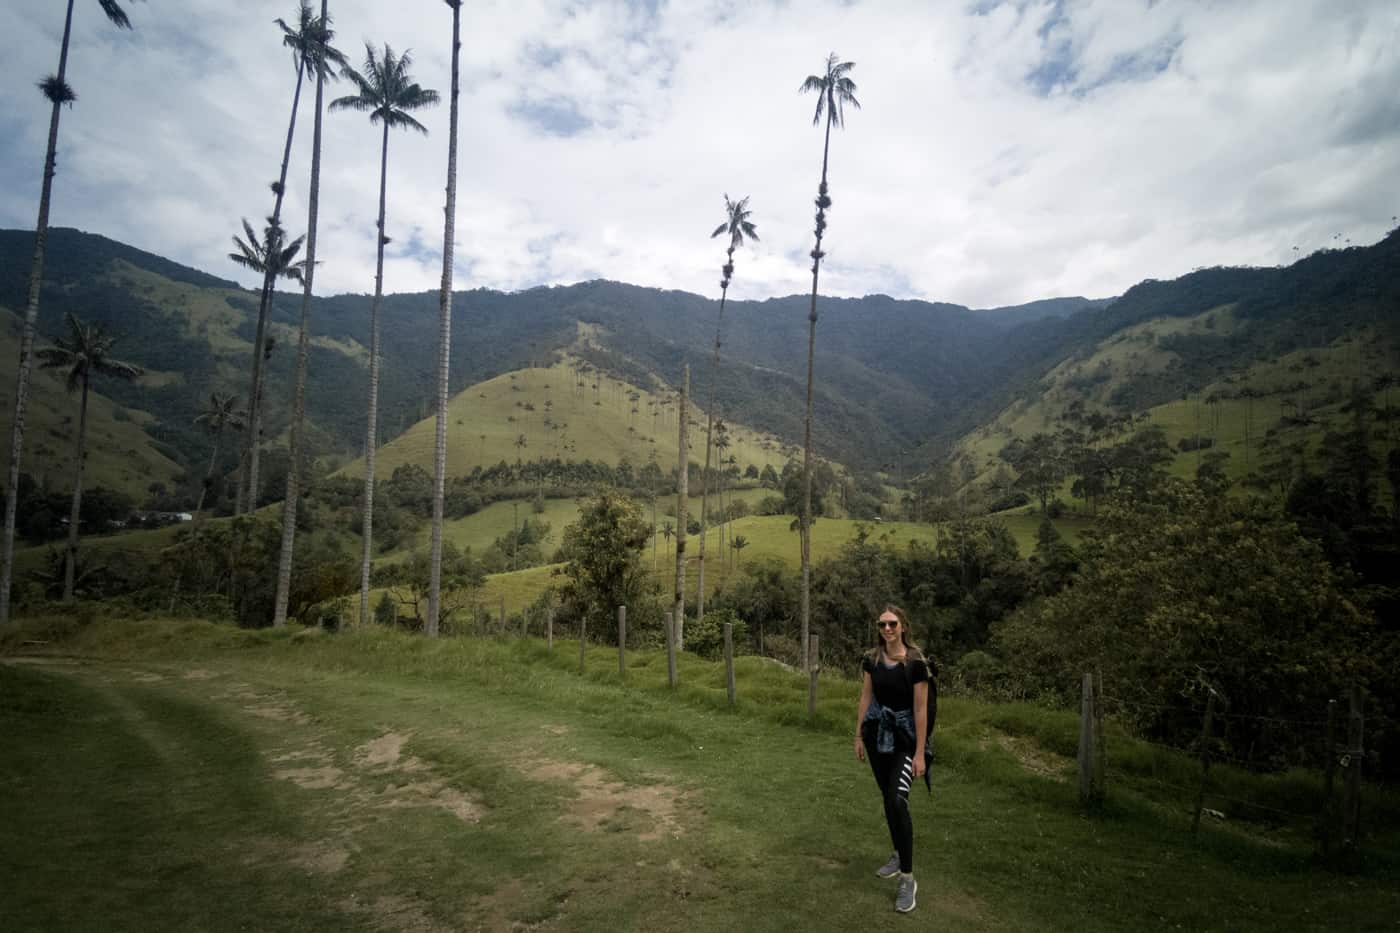 A solo female traveller at Colombia's Cocora Valley